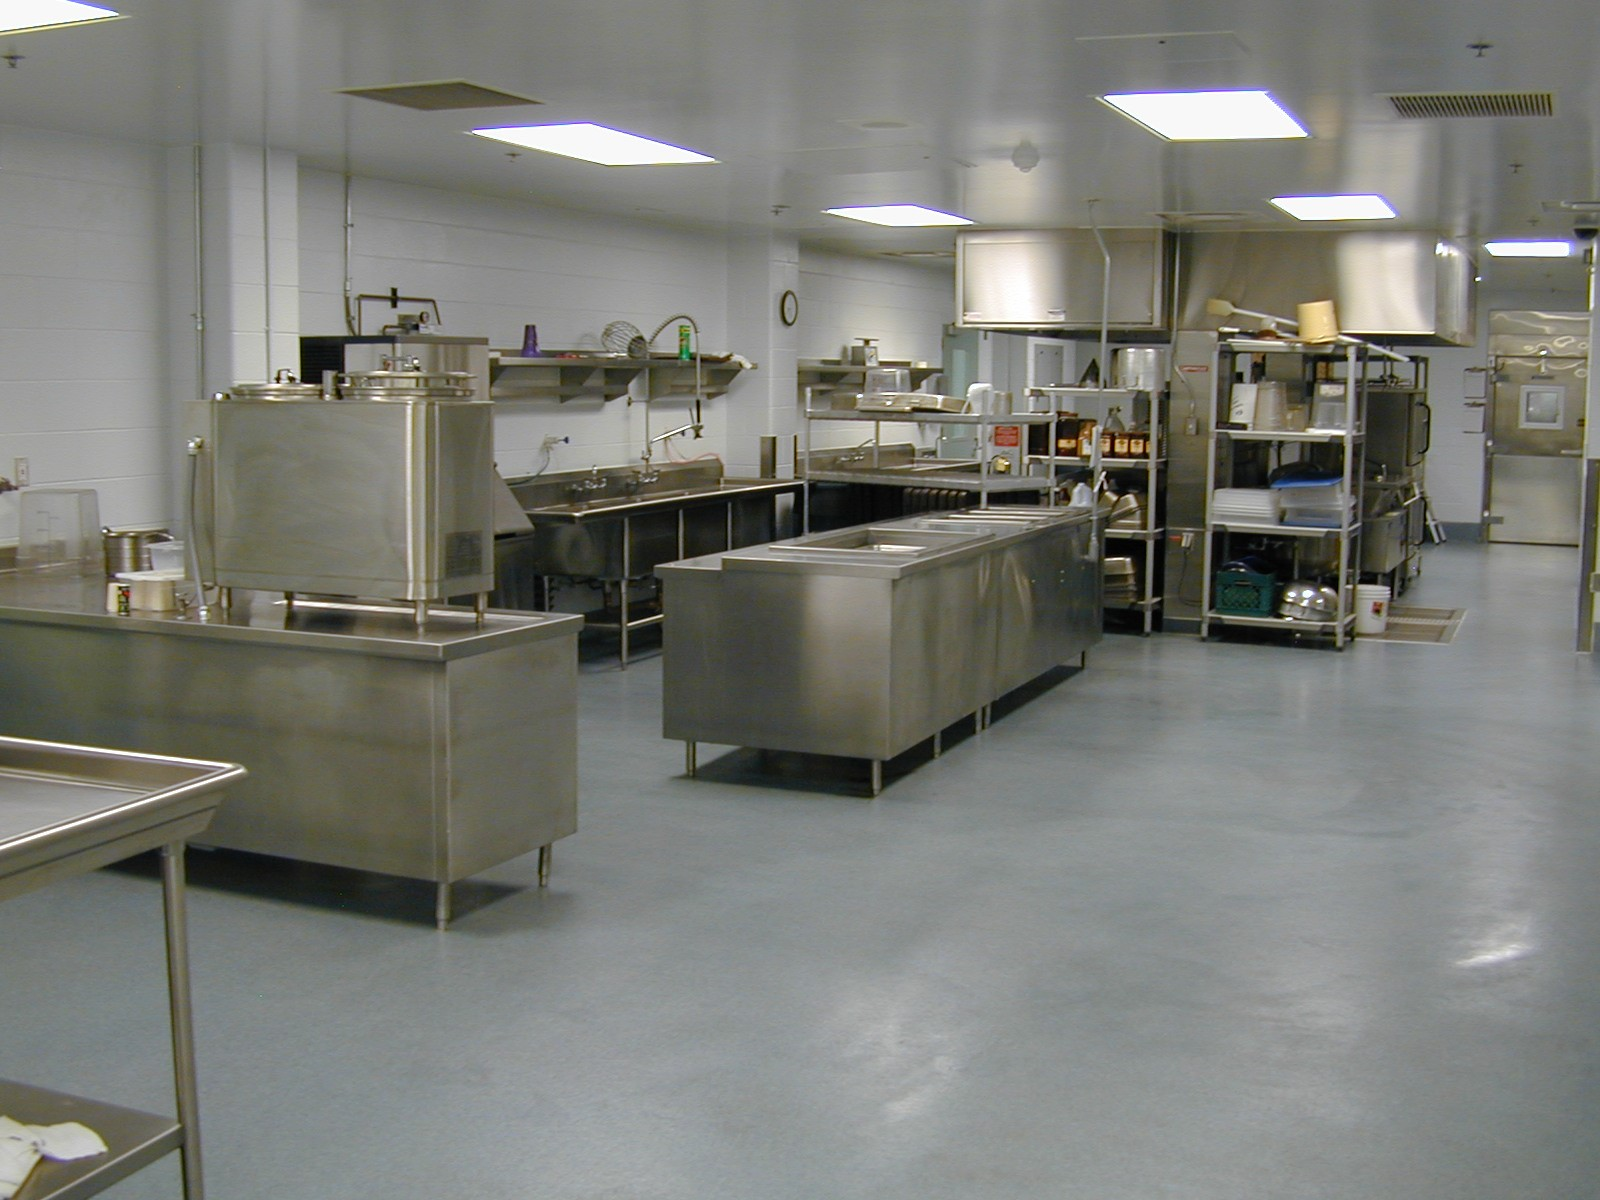 Detention Center Kitchen